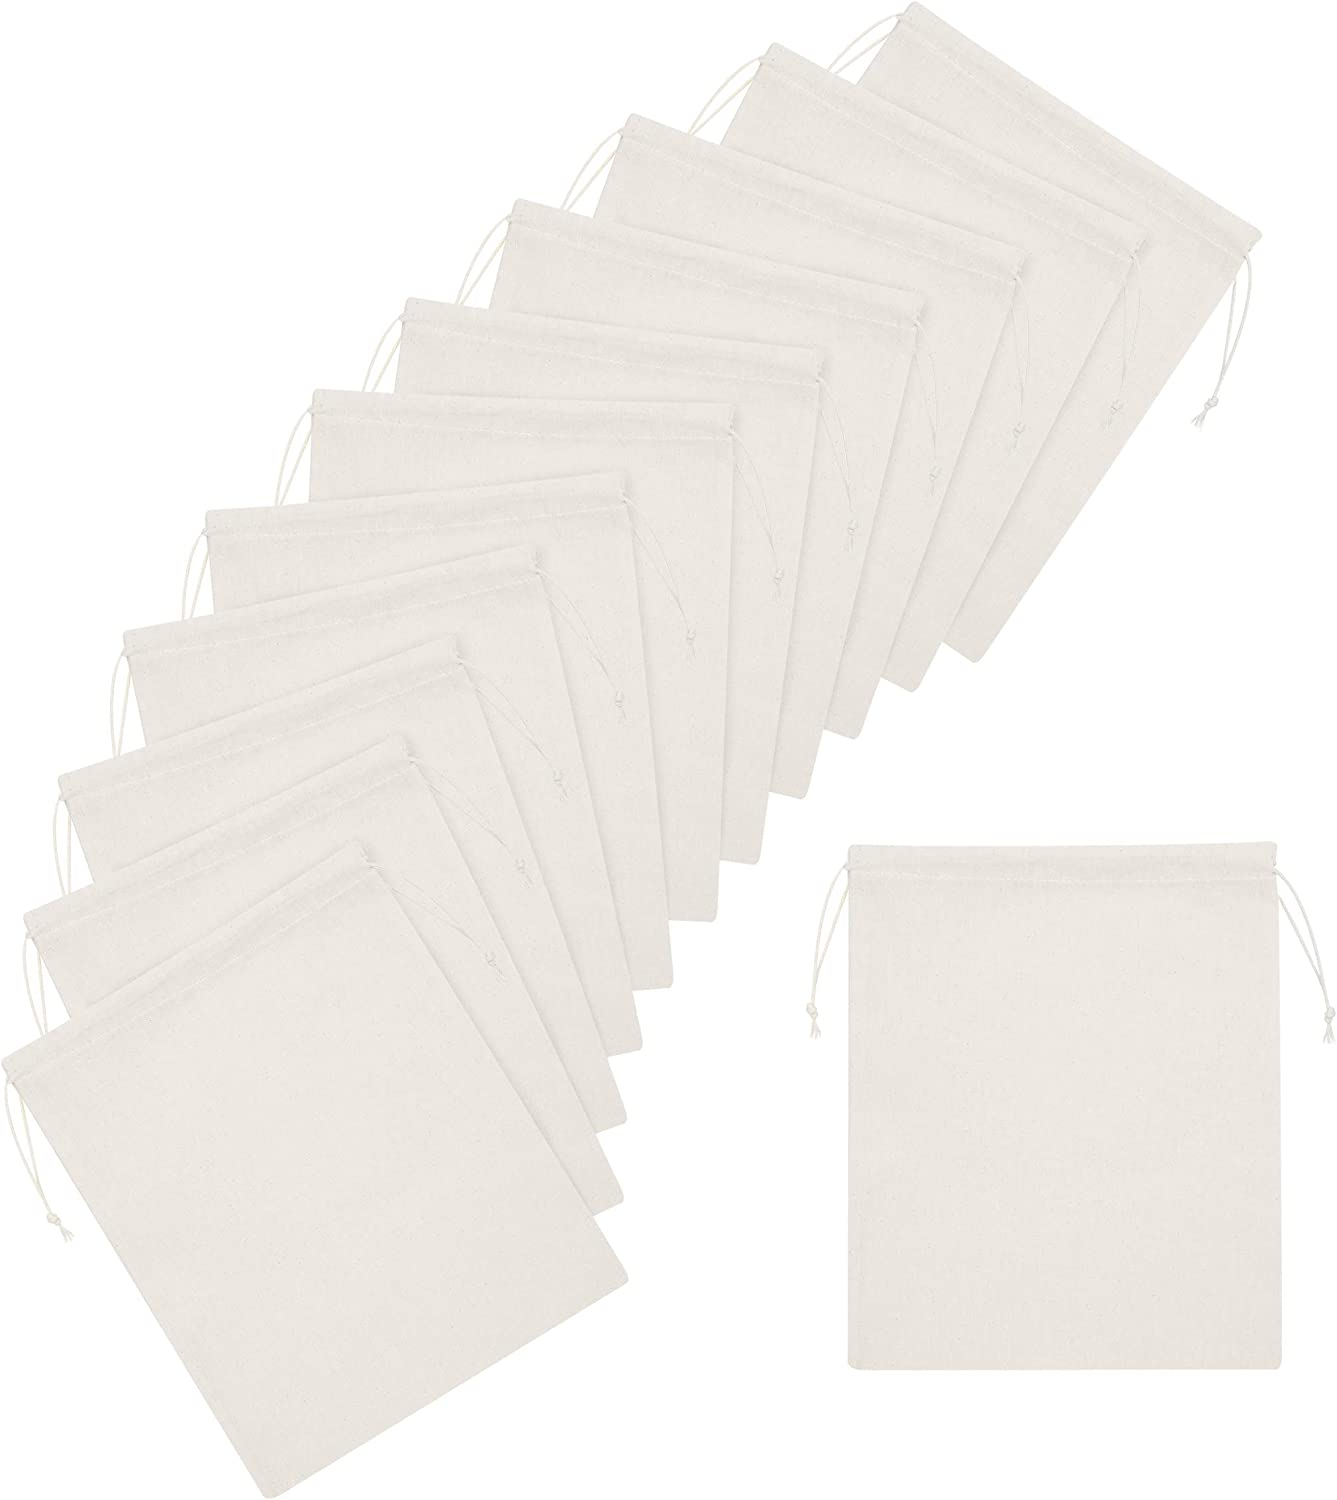 100 Percent Cotton Muslin Drawstring Bags 12-Pack For Storage Pantry Gifts - Unbleached (10 x 12 inch - 12 pack, Beige)